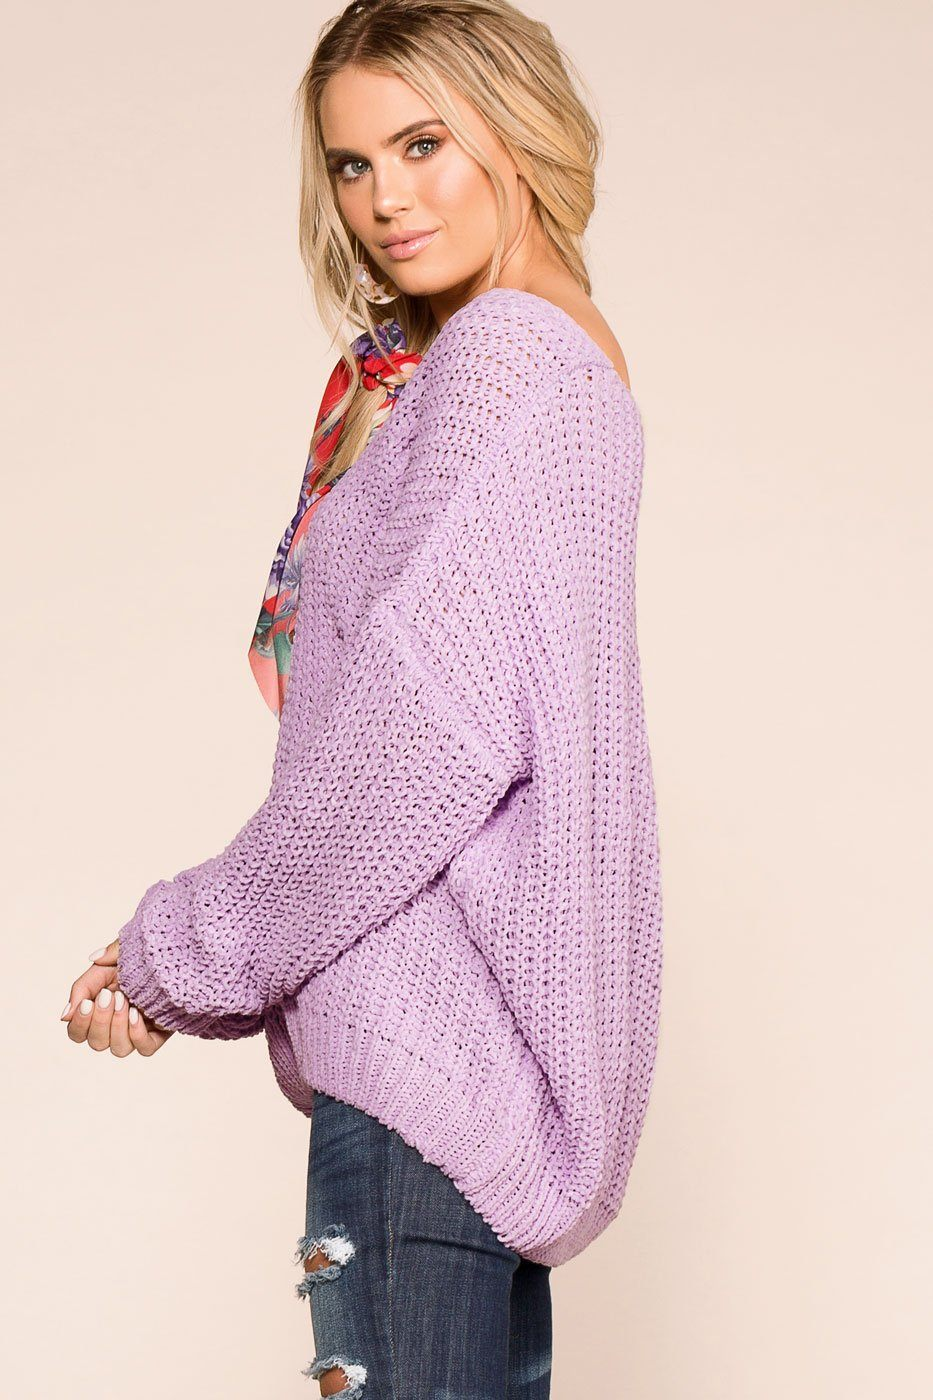 Feeling Good Lavender Oversize Knit Sweater | Miracle Sweater